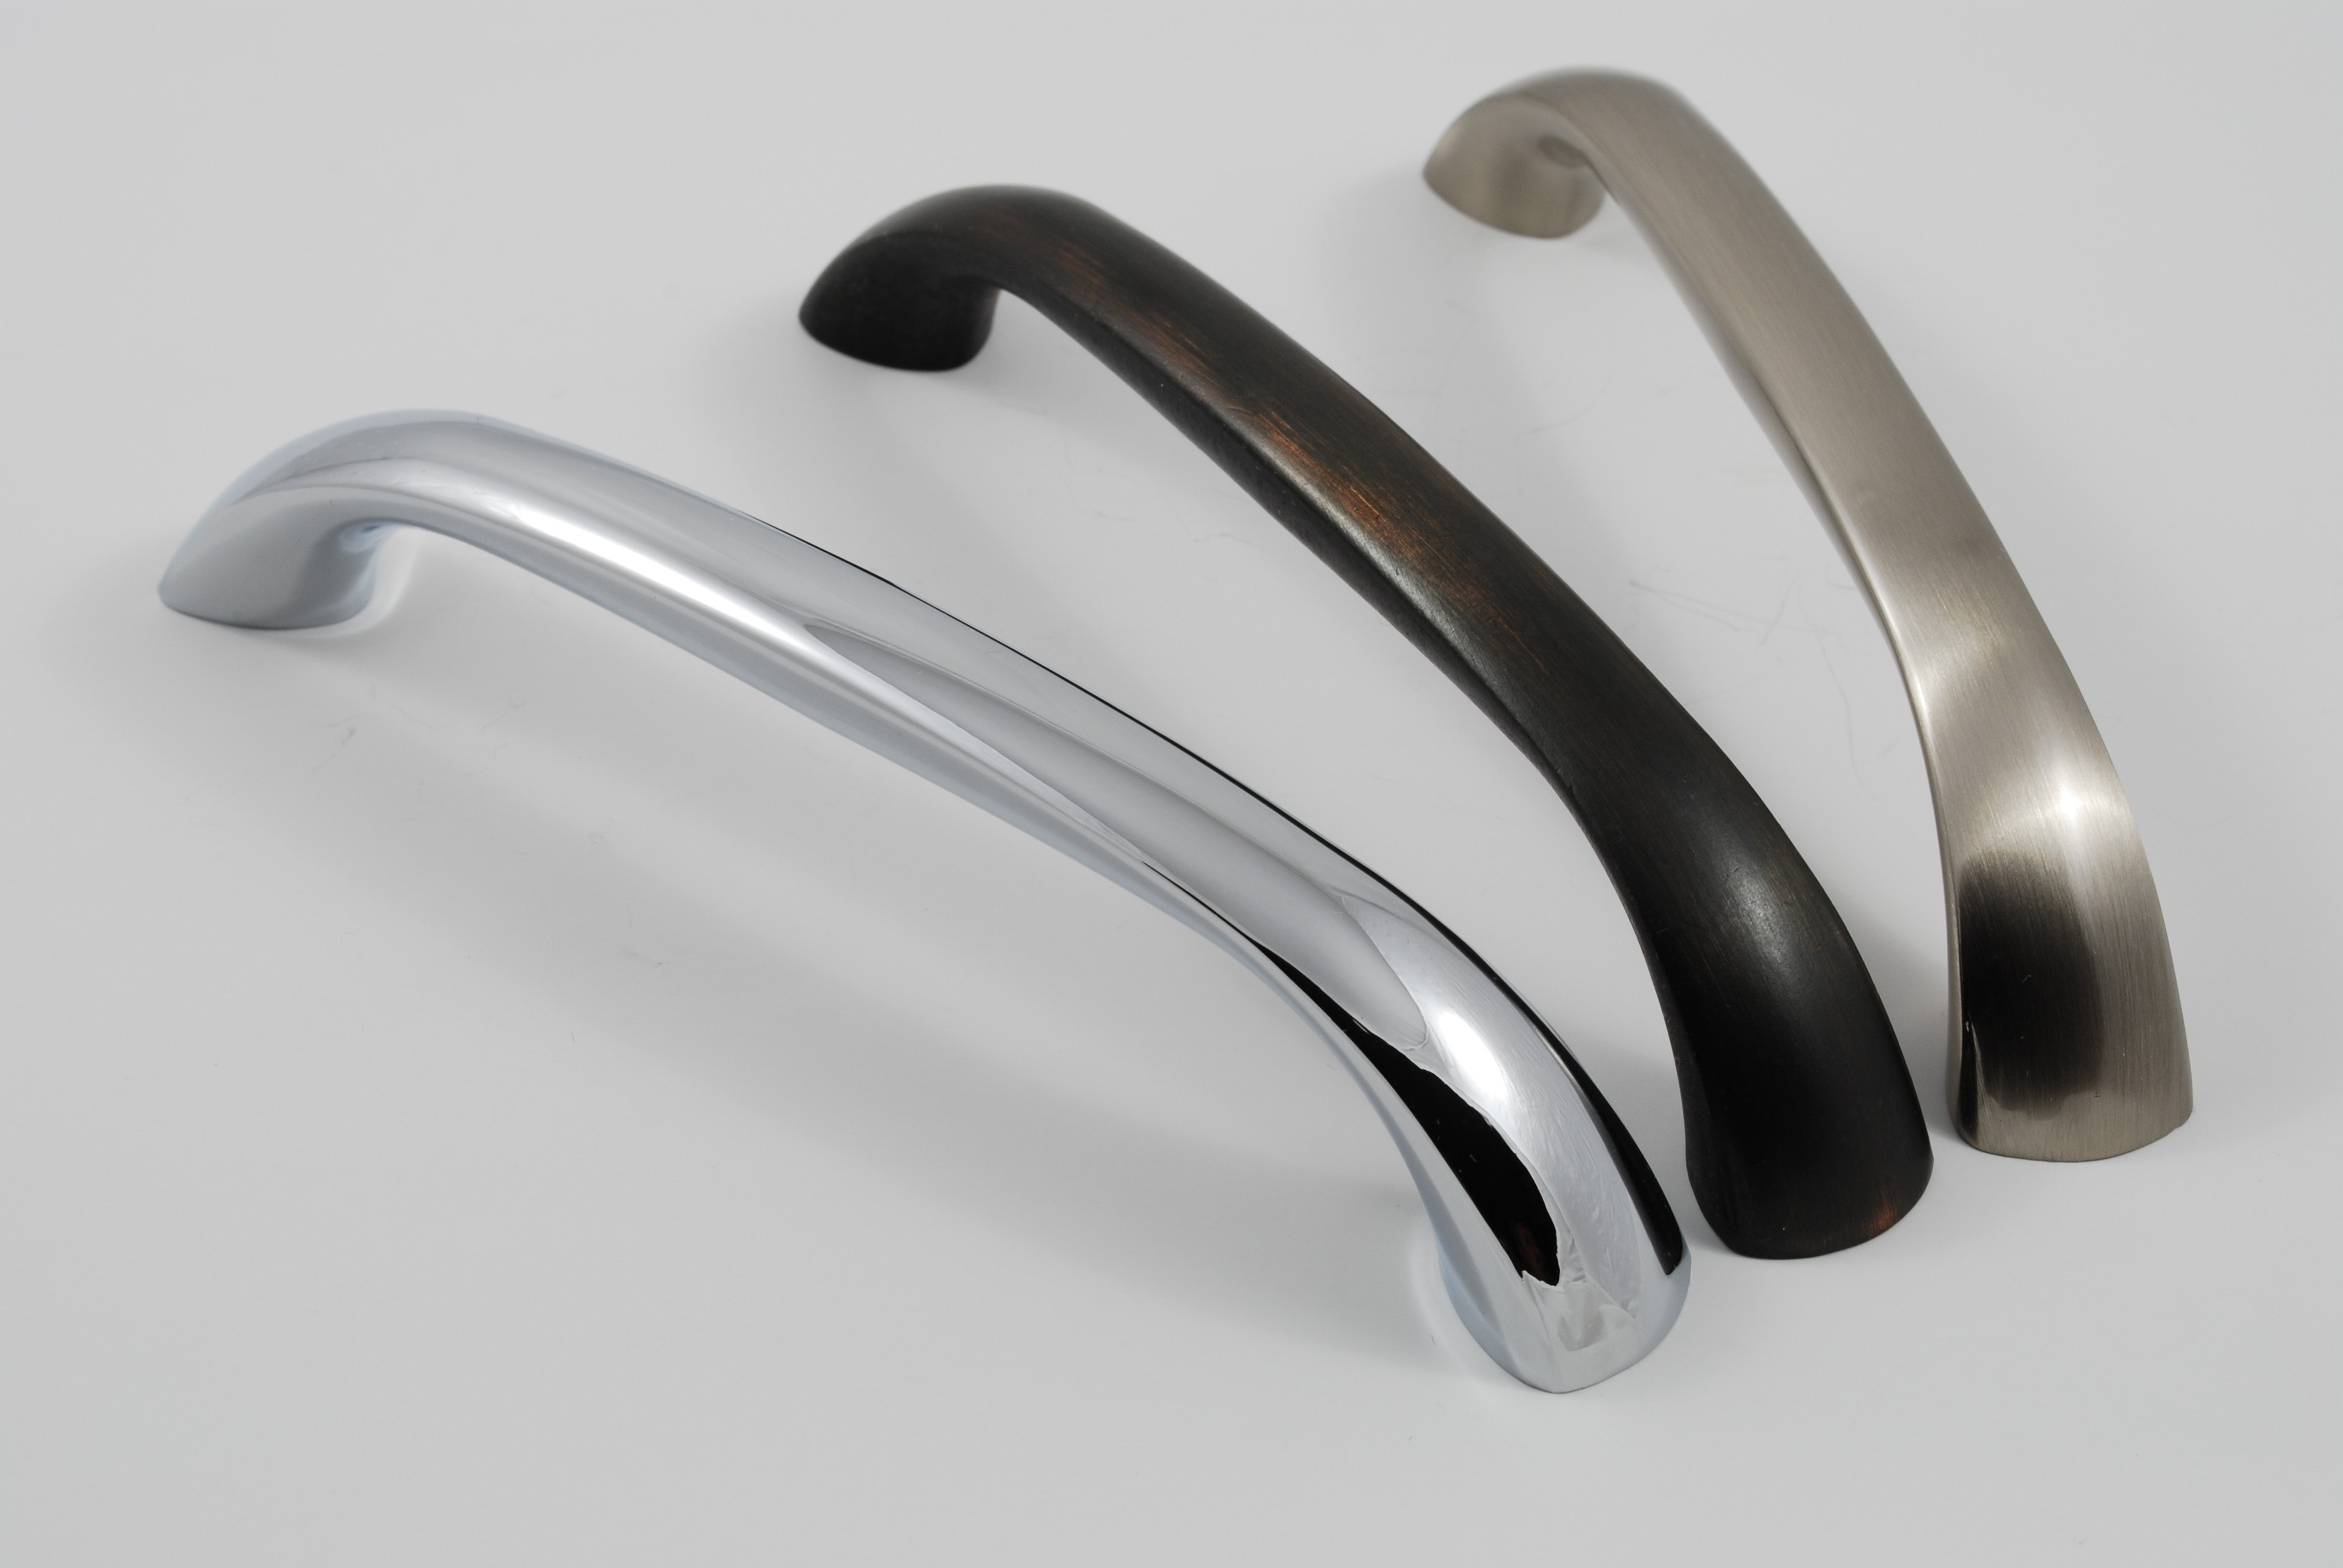 Residential Essentials 10223 Cabinet Pull